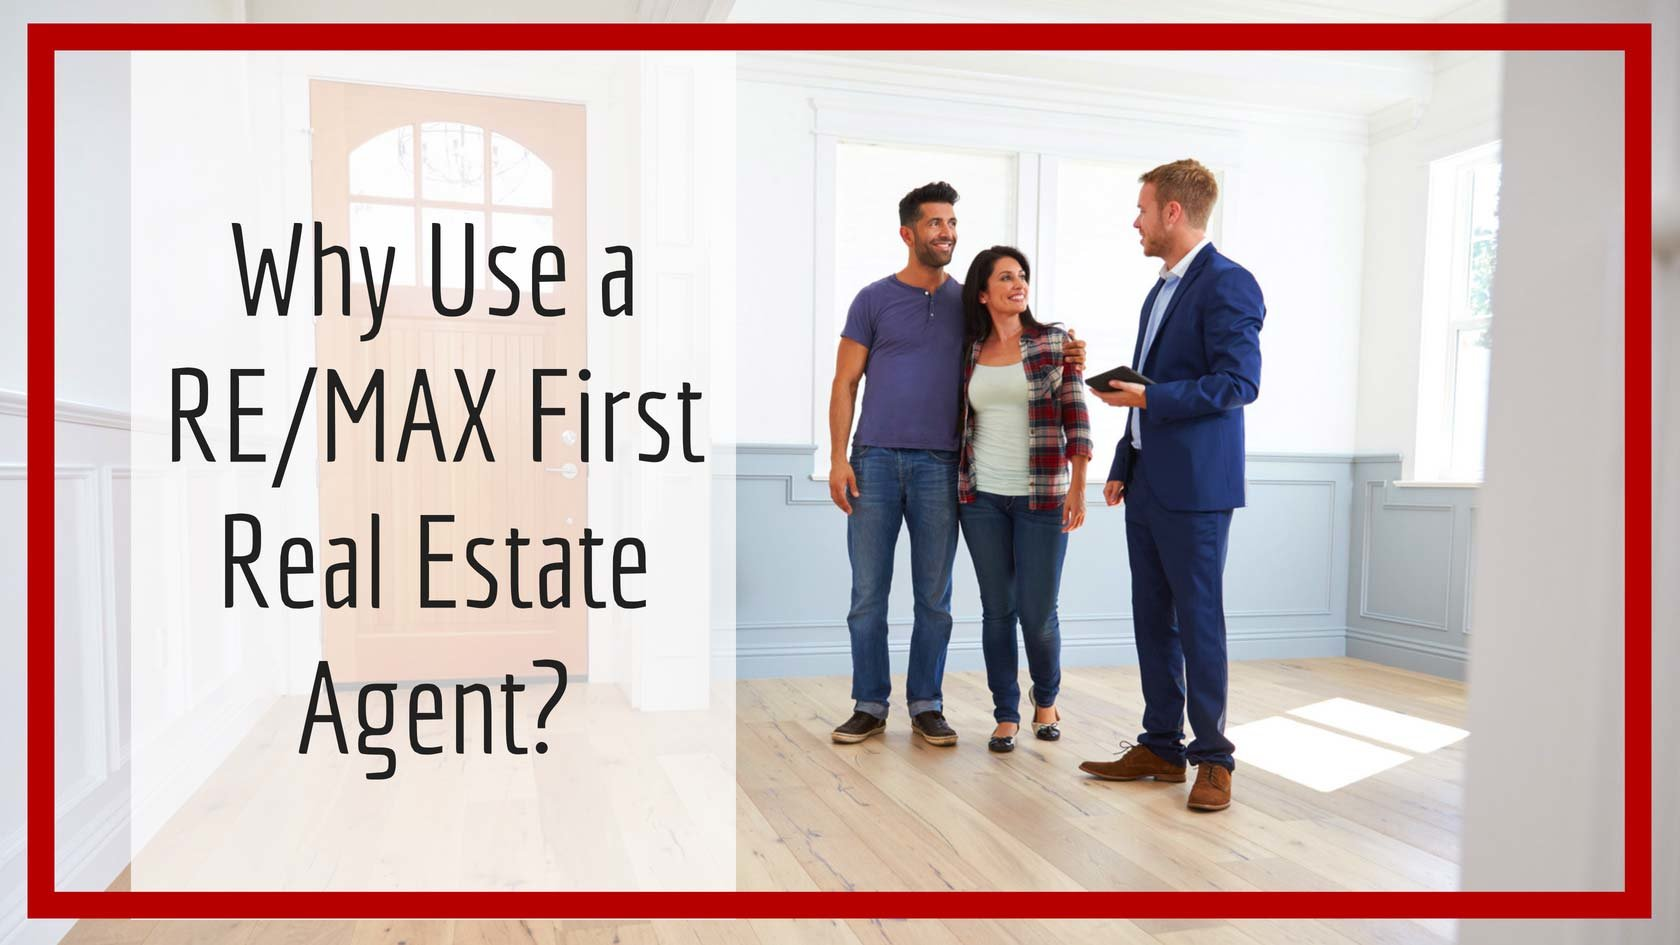 Why Use a RE/MAX First Real Estate Agent?